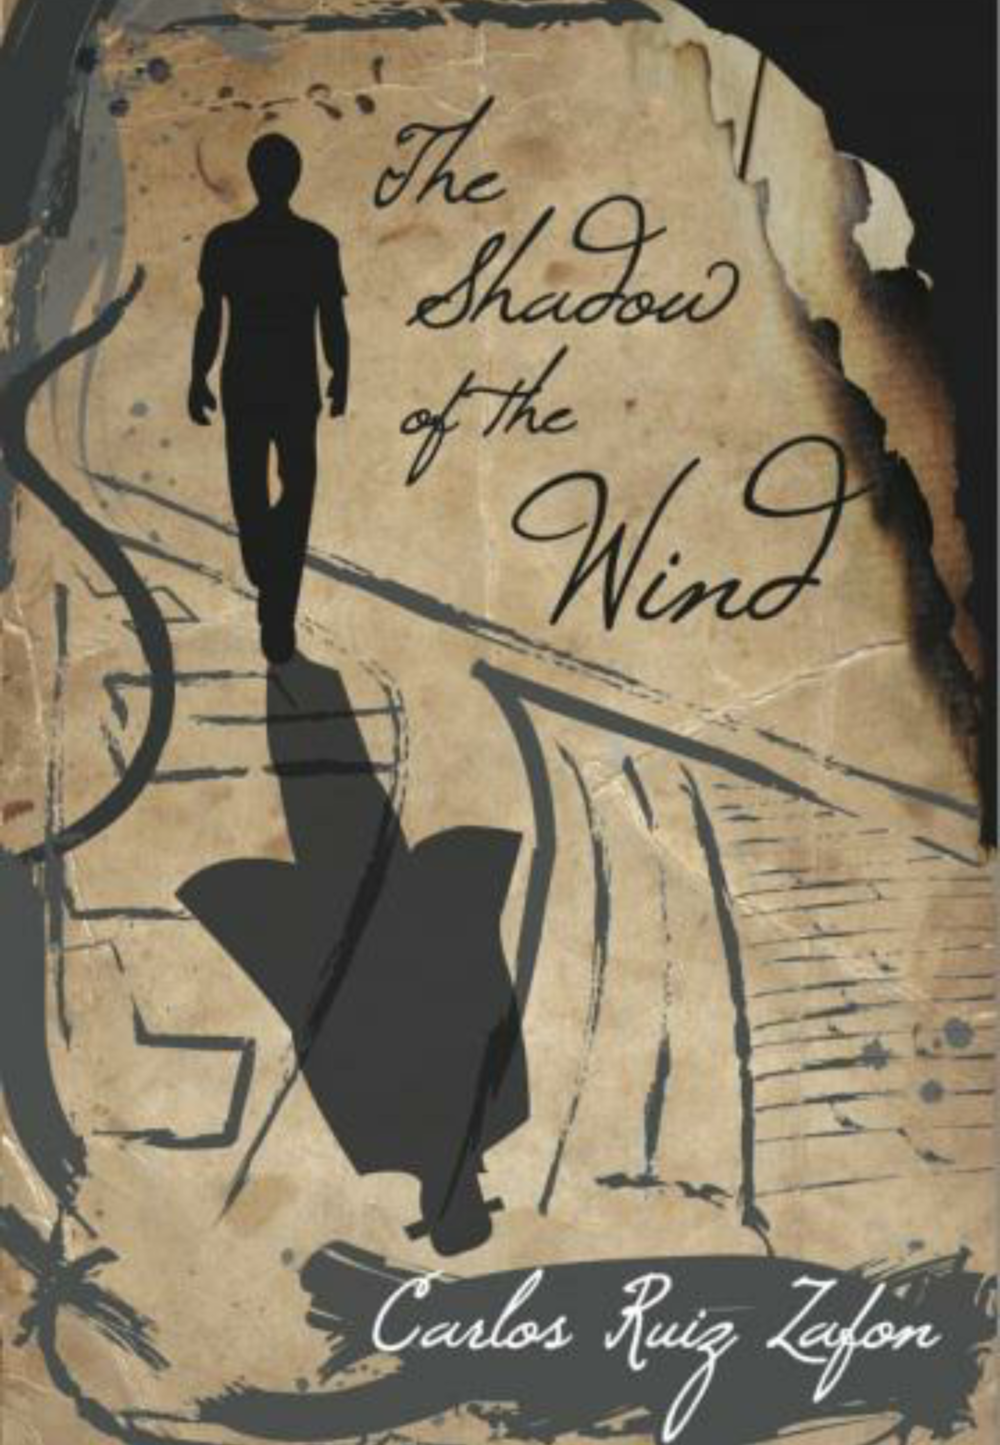 The Shadow of the Wind by Carlos Ruiz Zafón PUBLISHED January 25, 2005 Penguin Books GENRE: Adult, Mystery PAGES: 487 FORMAT: PAPERBACK SOURCE: PURCHASED PACING: {5/5}